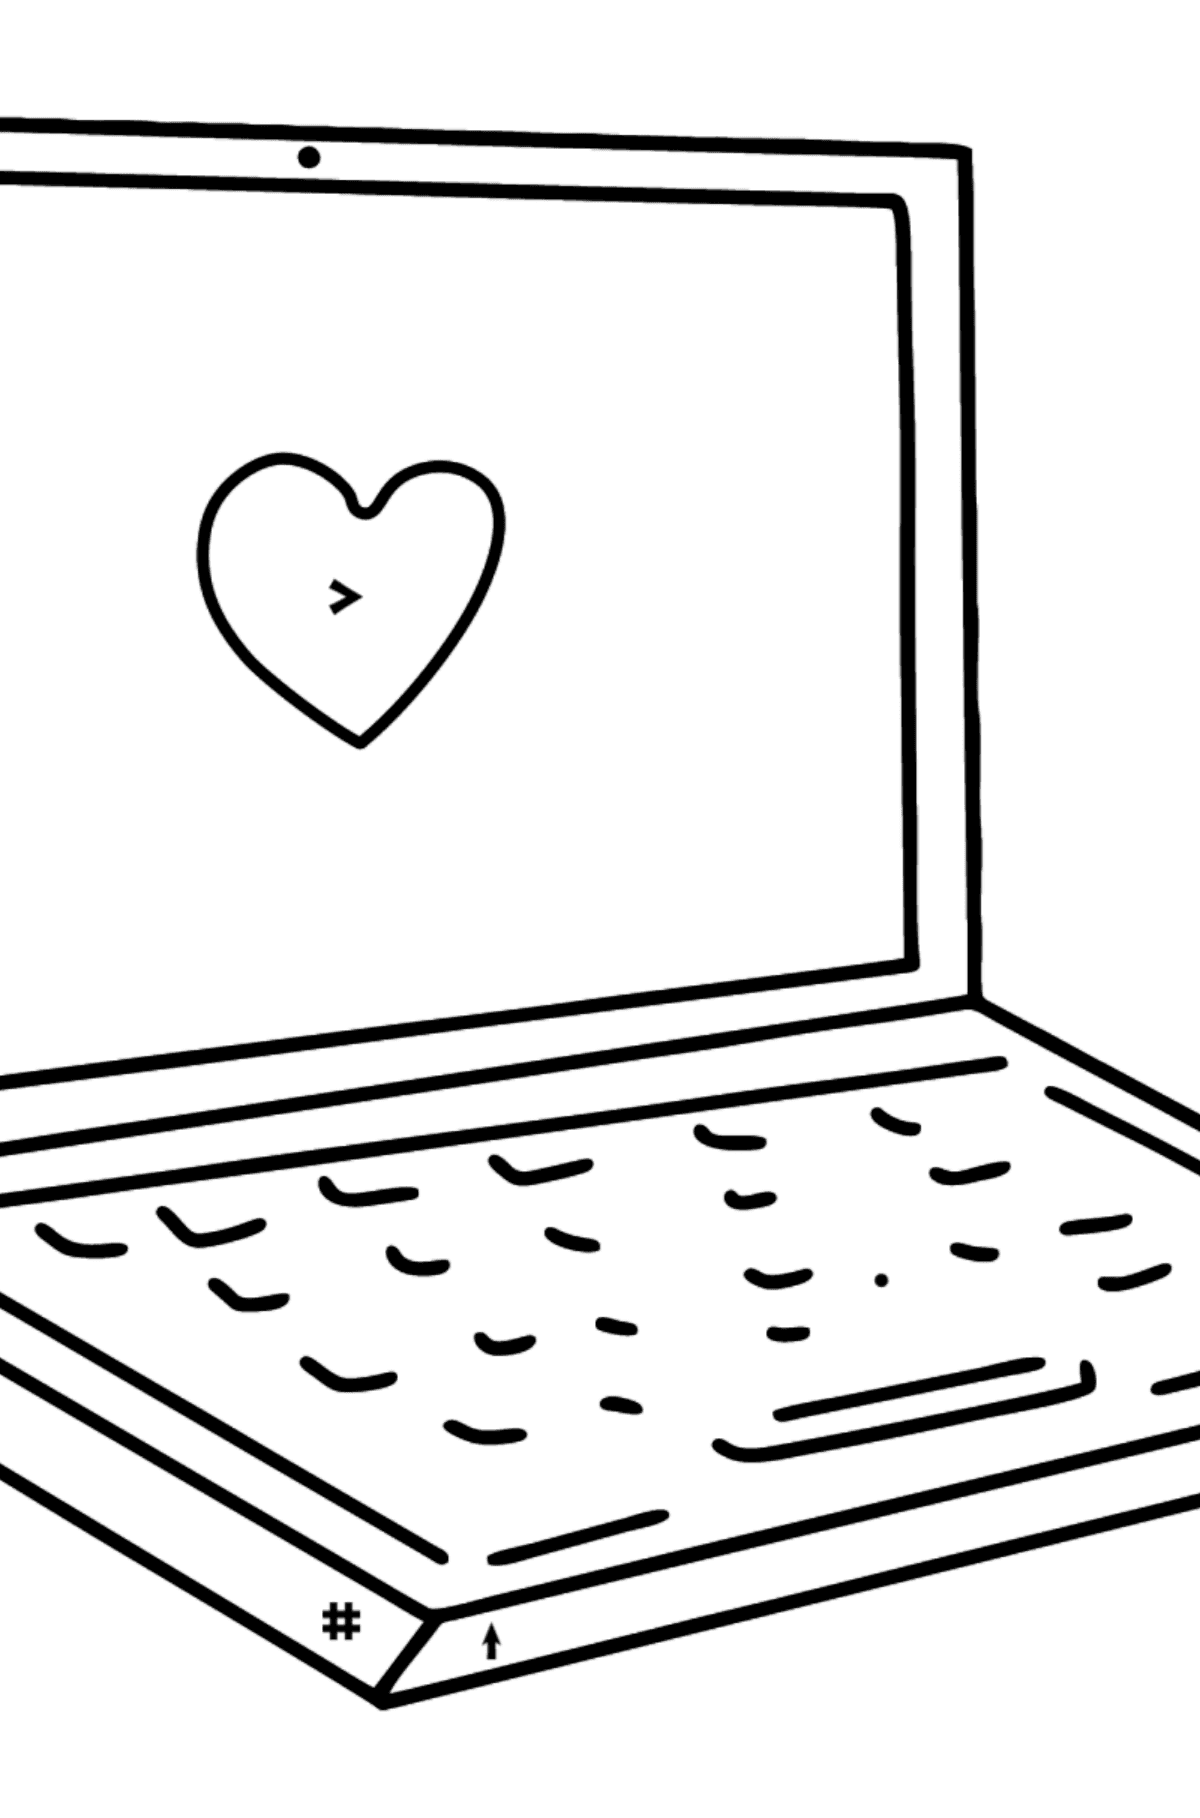 Notebook coloring page - Coloring by Symbols for Kids